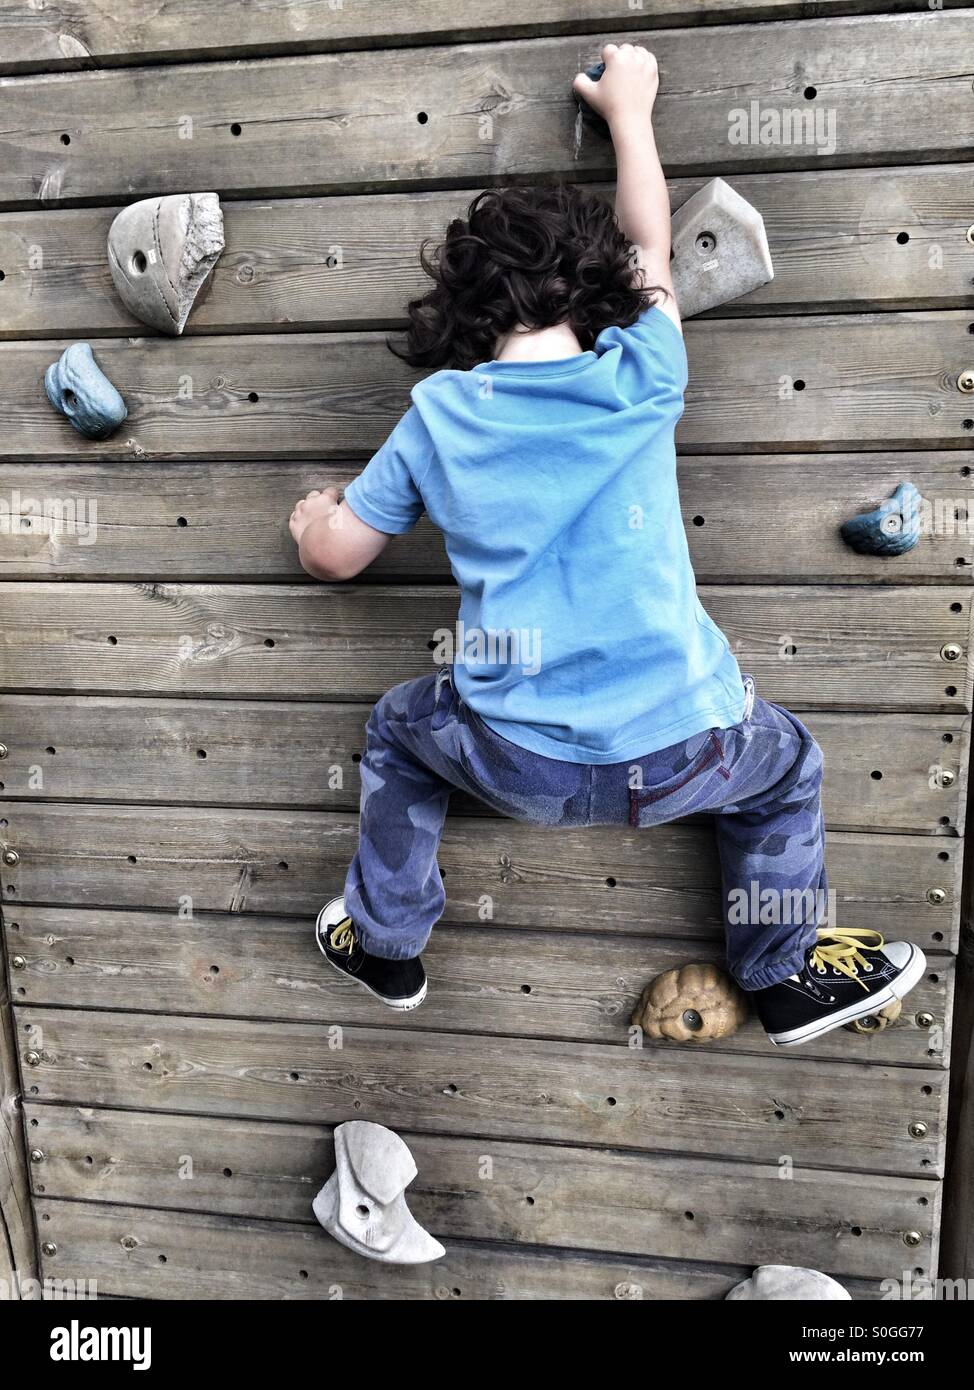 Four year old boy on climbing wall - Stock Image